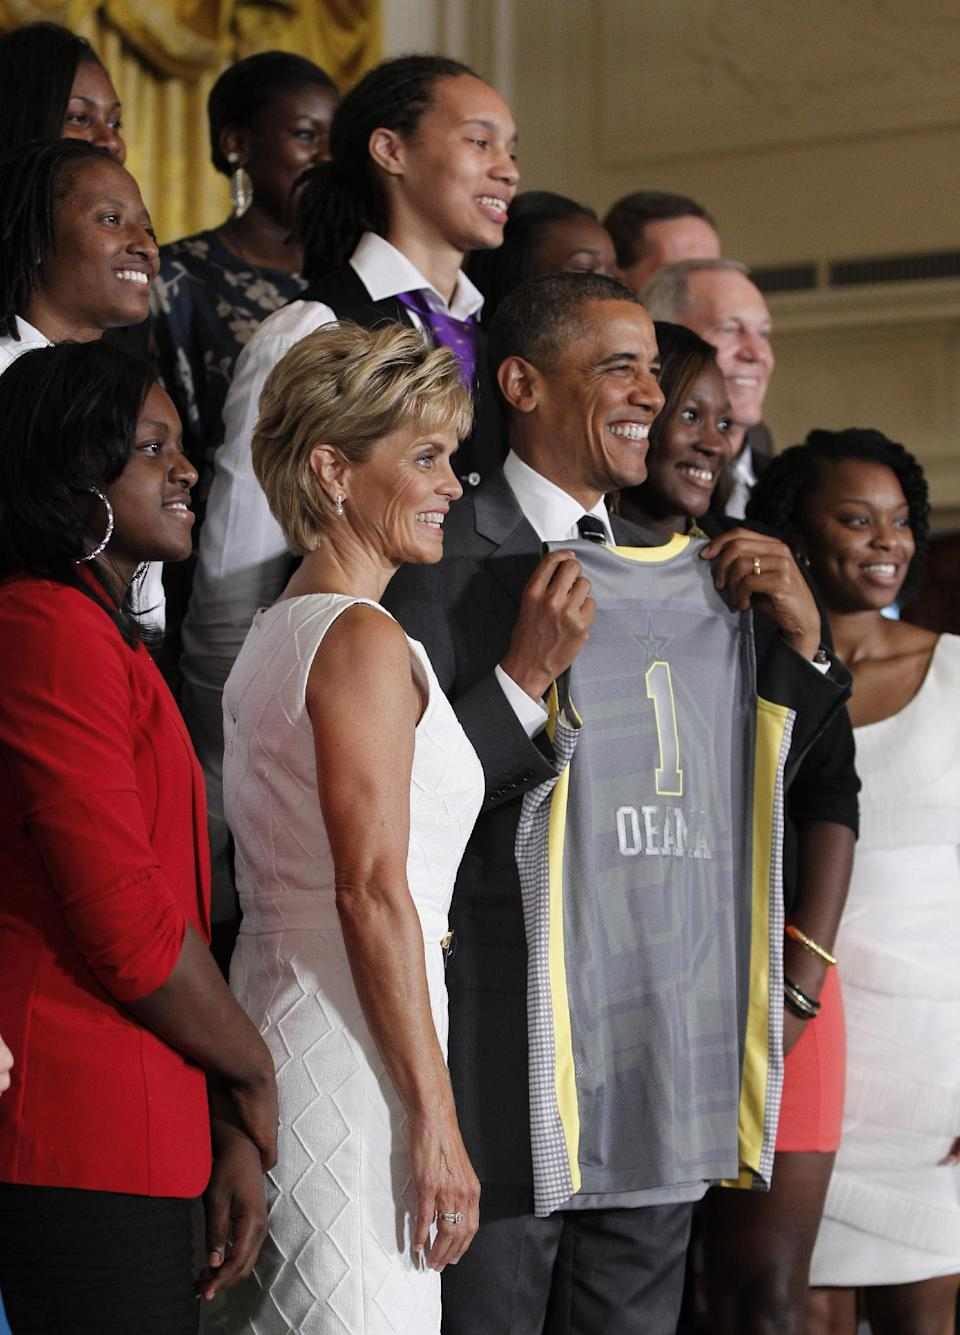 President Barack Obama, center, holds up a jersey given to him by members of the 2012 NCAA Women's basketball champions Baylor University Bears during a ceremony in the East Room of the White House in Washington, Wednesday, July 18, 2012. (AP Photo/Pablo Martinez Monsivais)